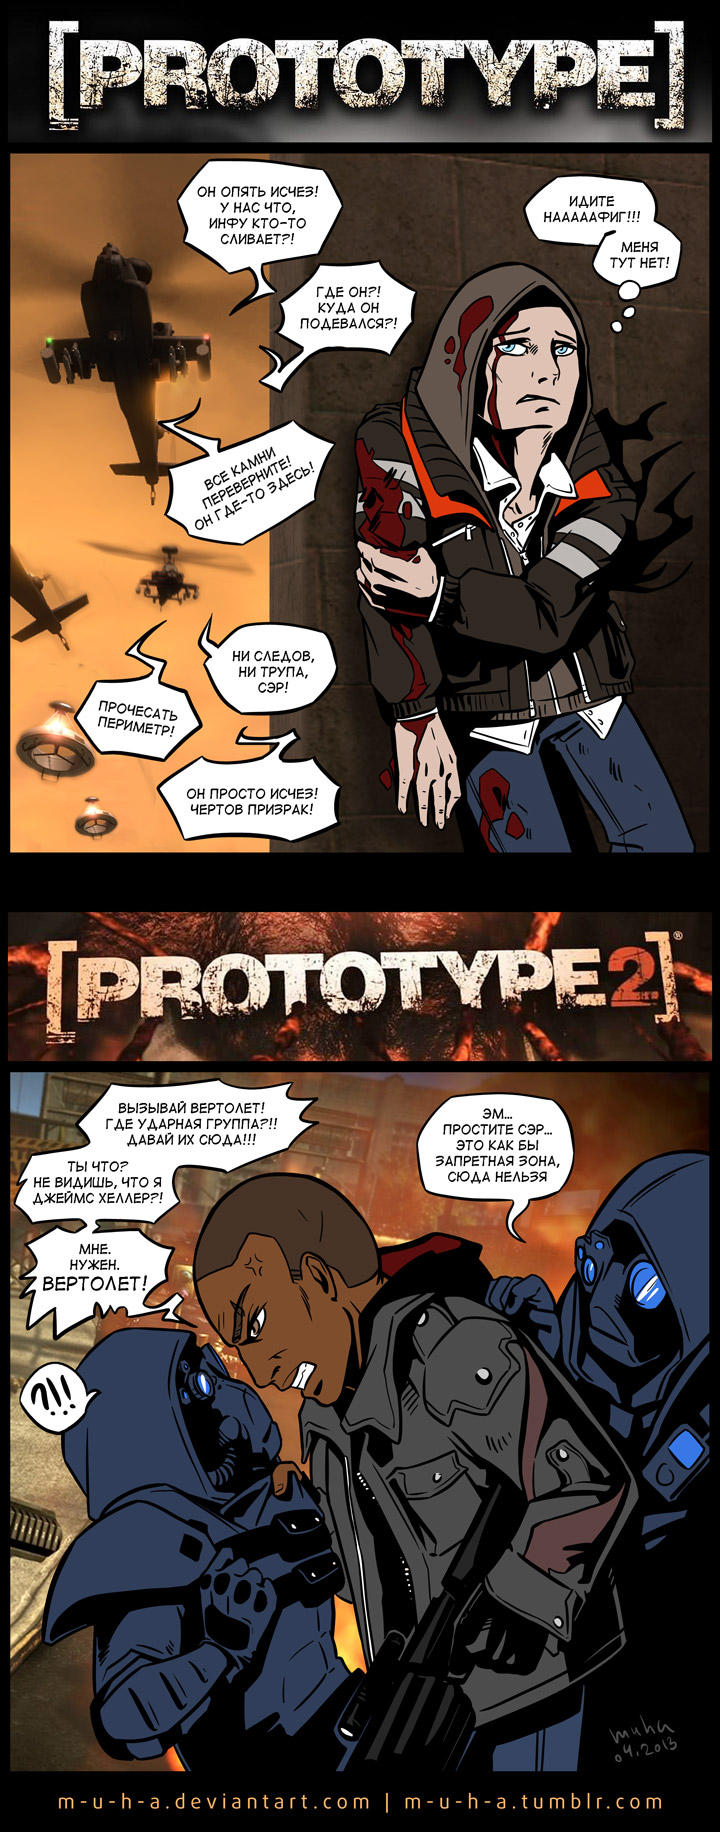 Prototype 1 and 2 - Gameplay by m-u-h-a